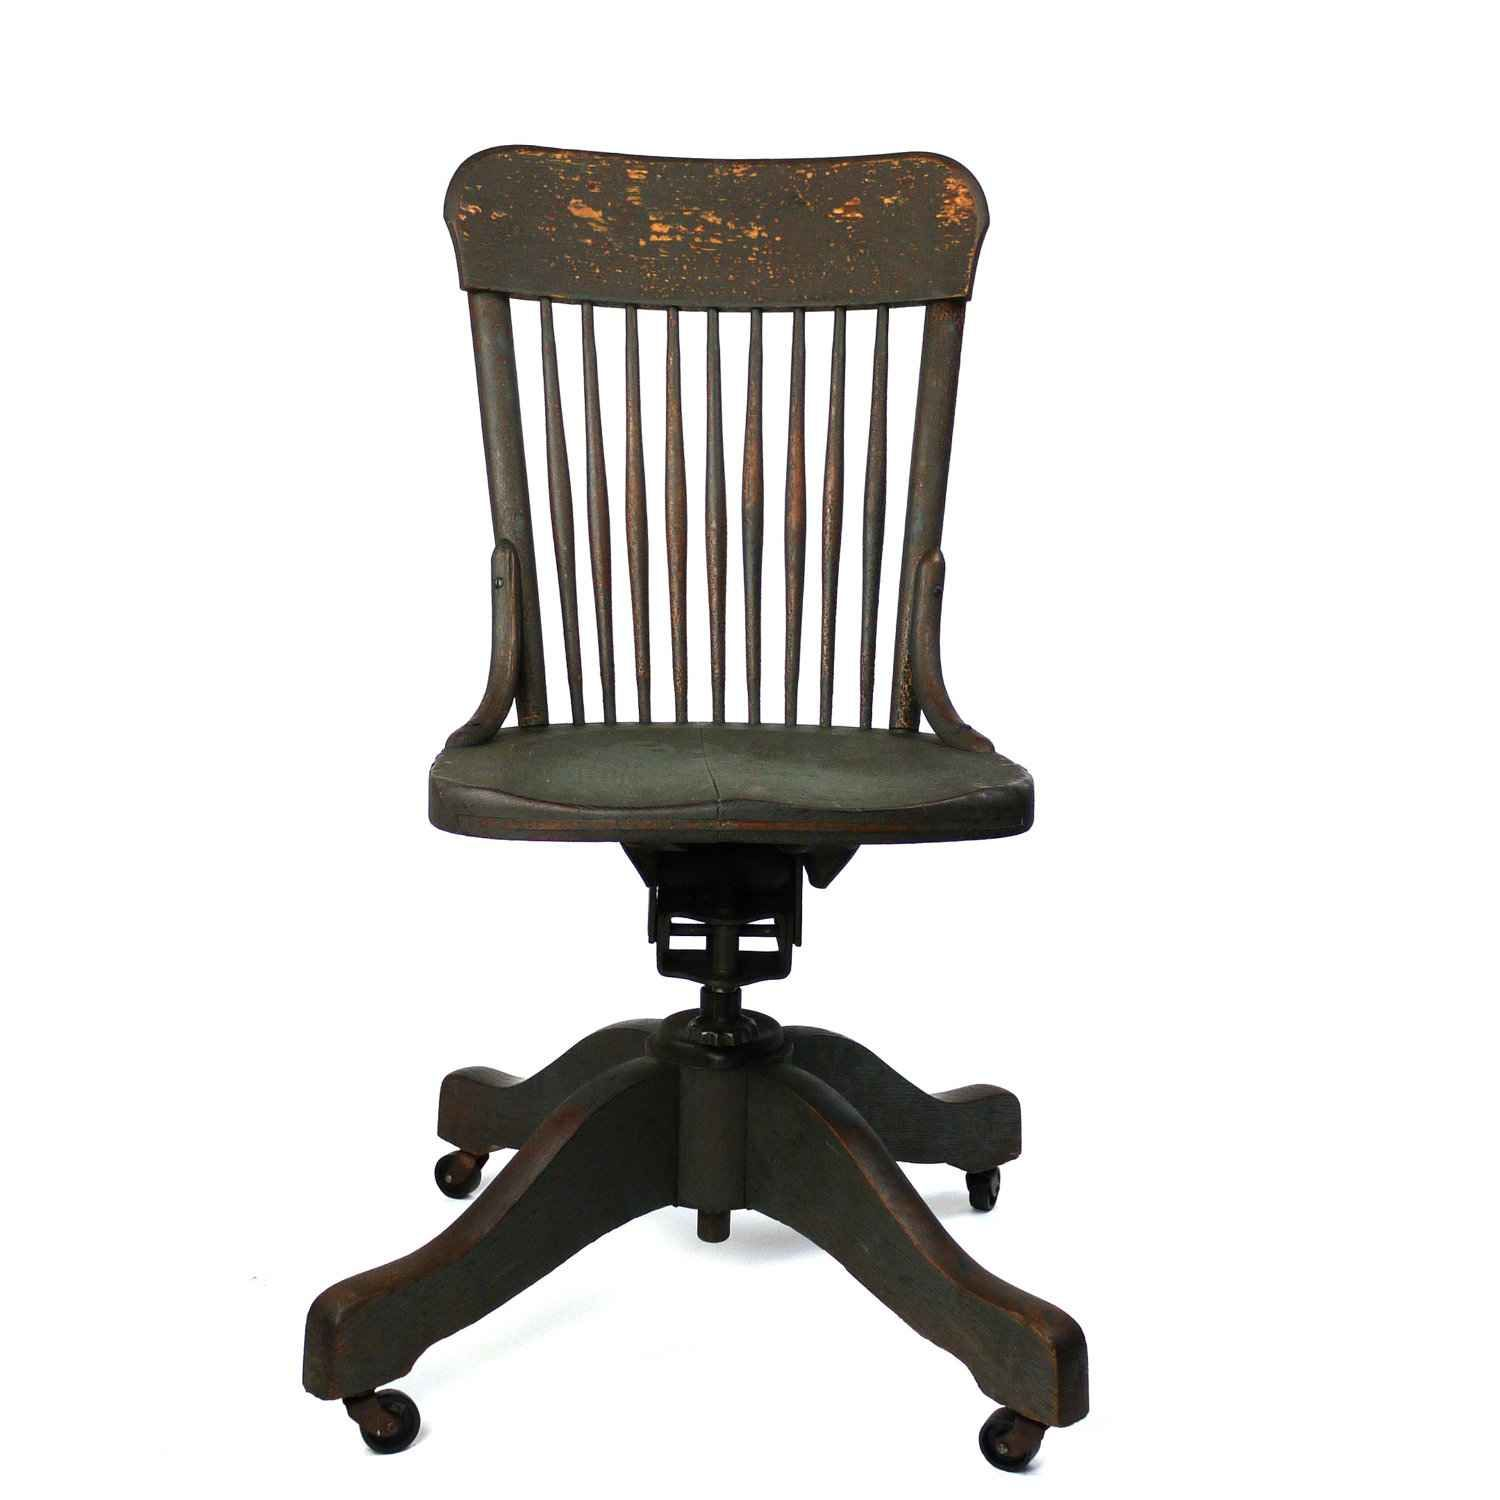 Daily memorandum wood antique office chair - Daily Memorandum Wood Antique Office Chair Conference Room